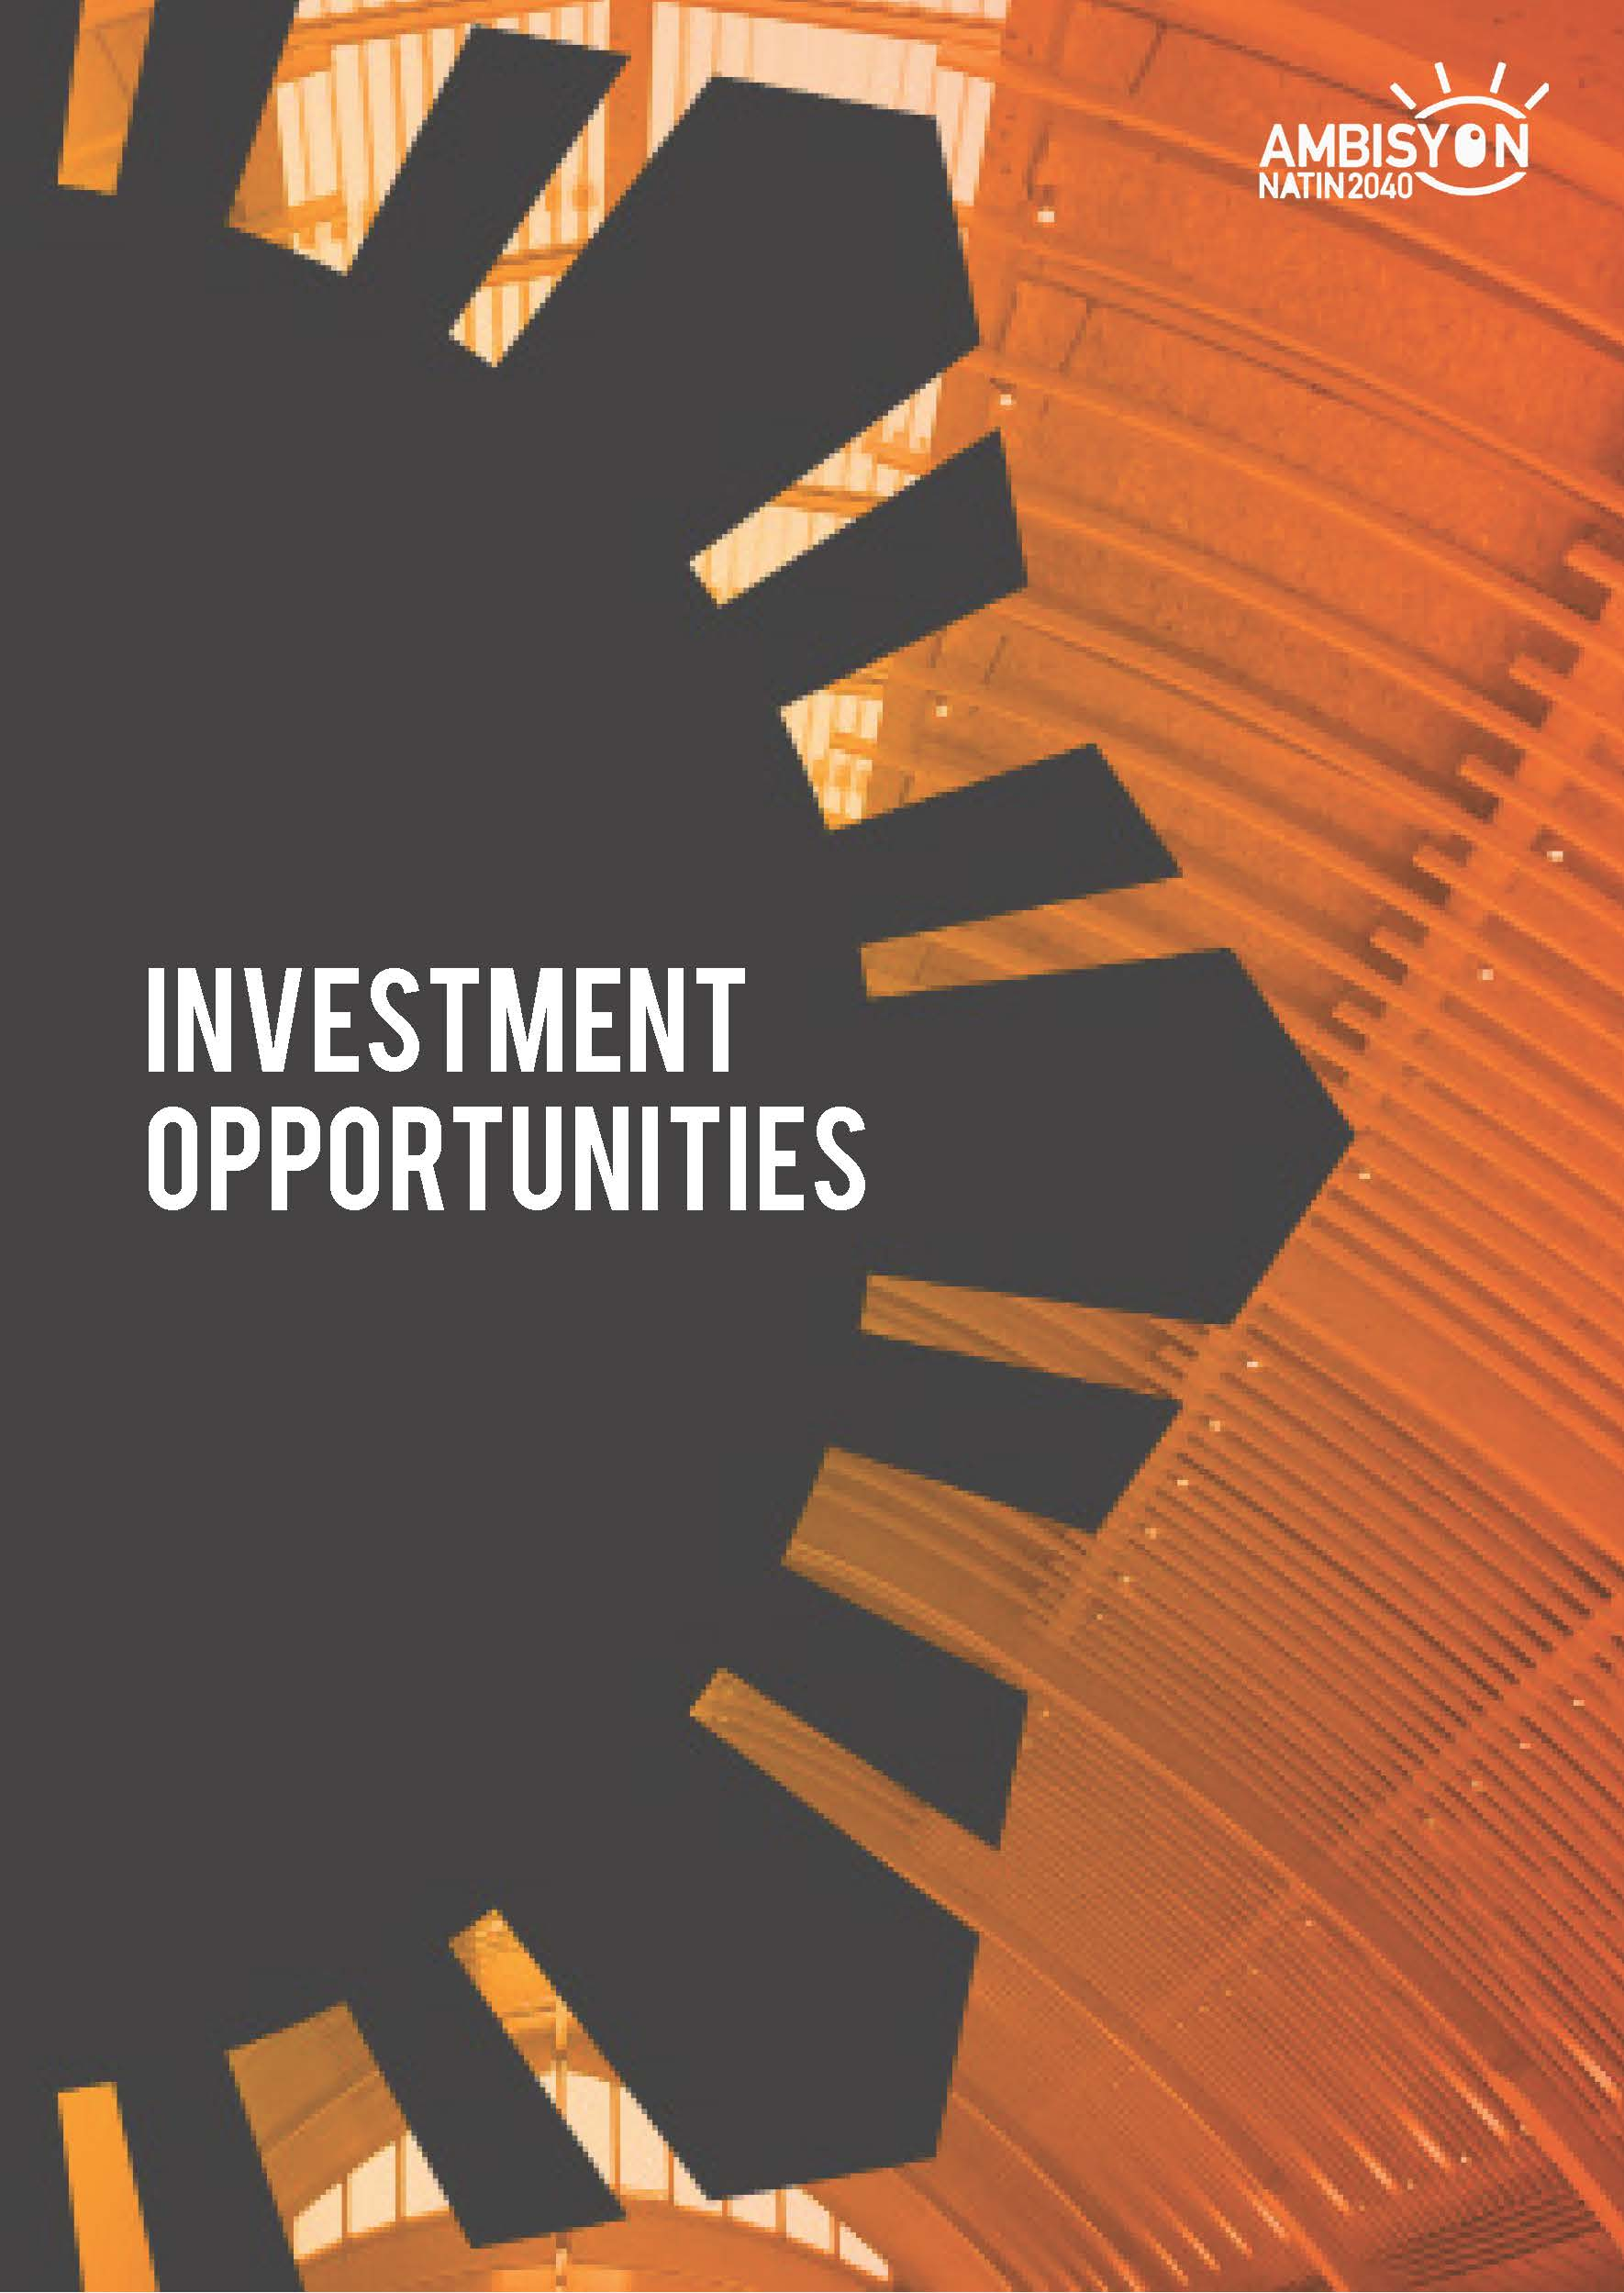 Investment-Opportunities-Brochure_Part1